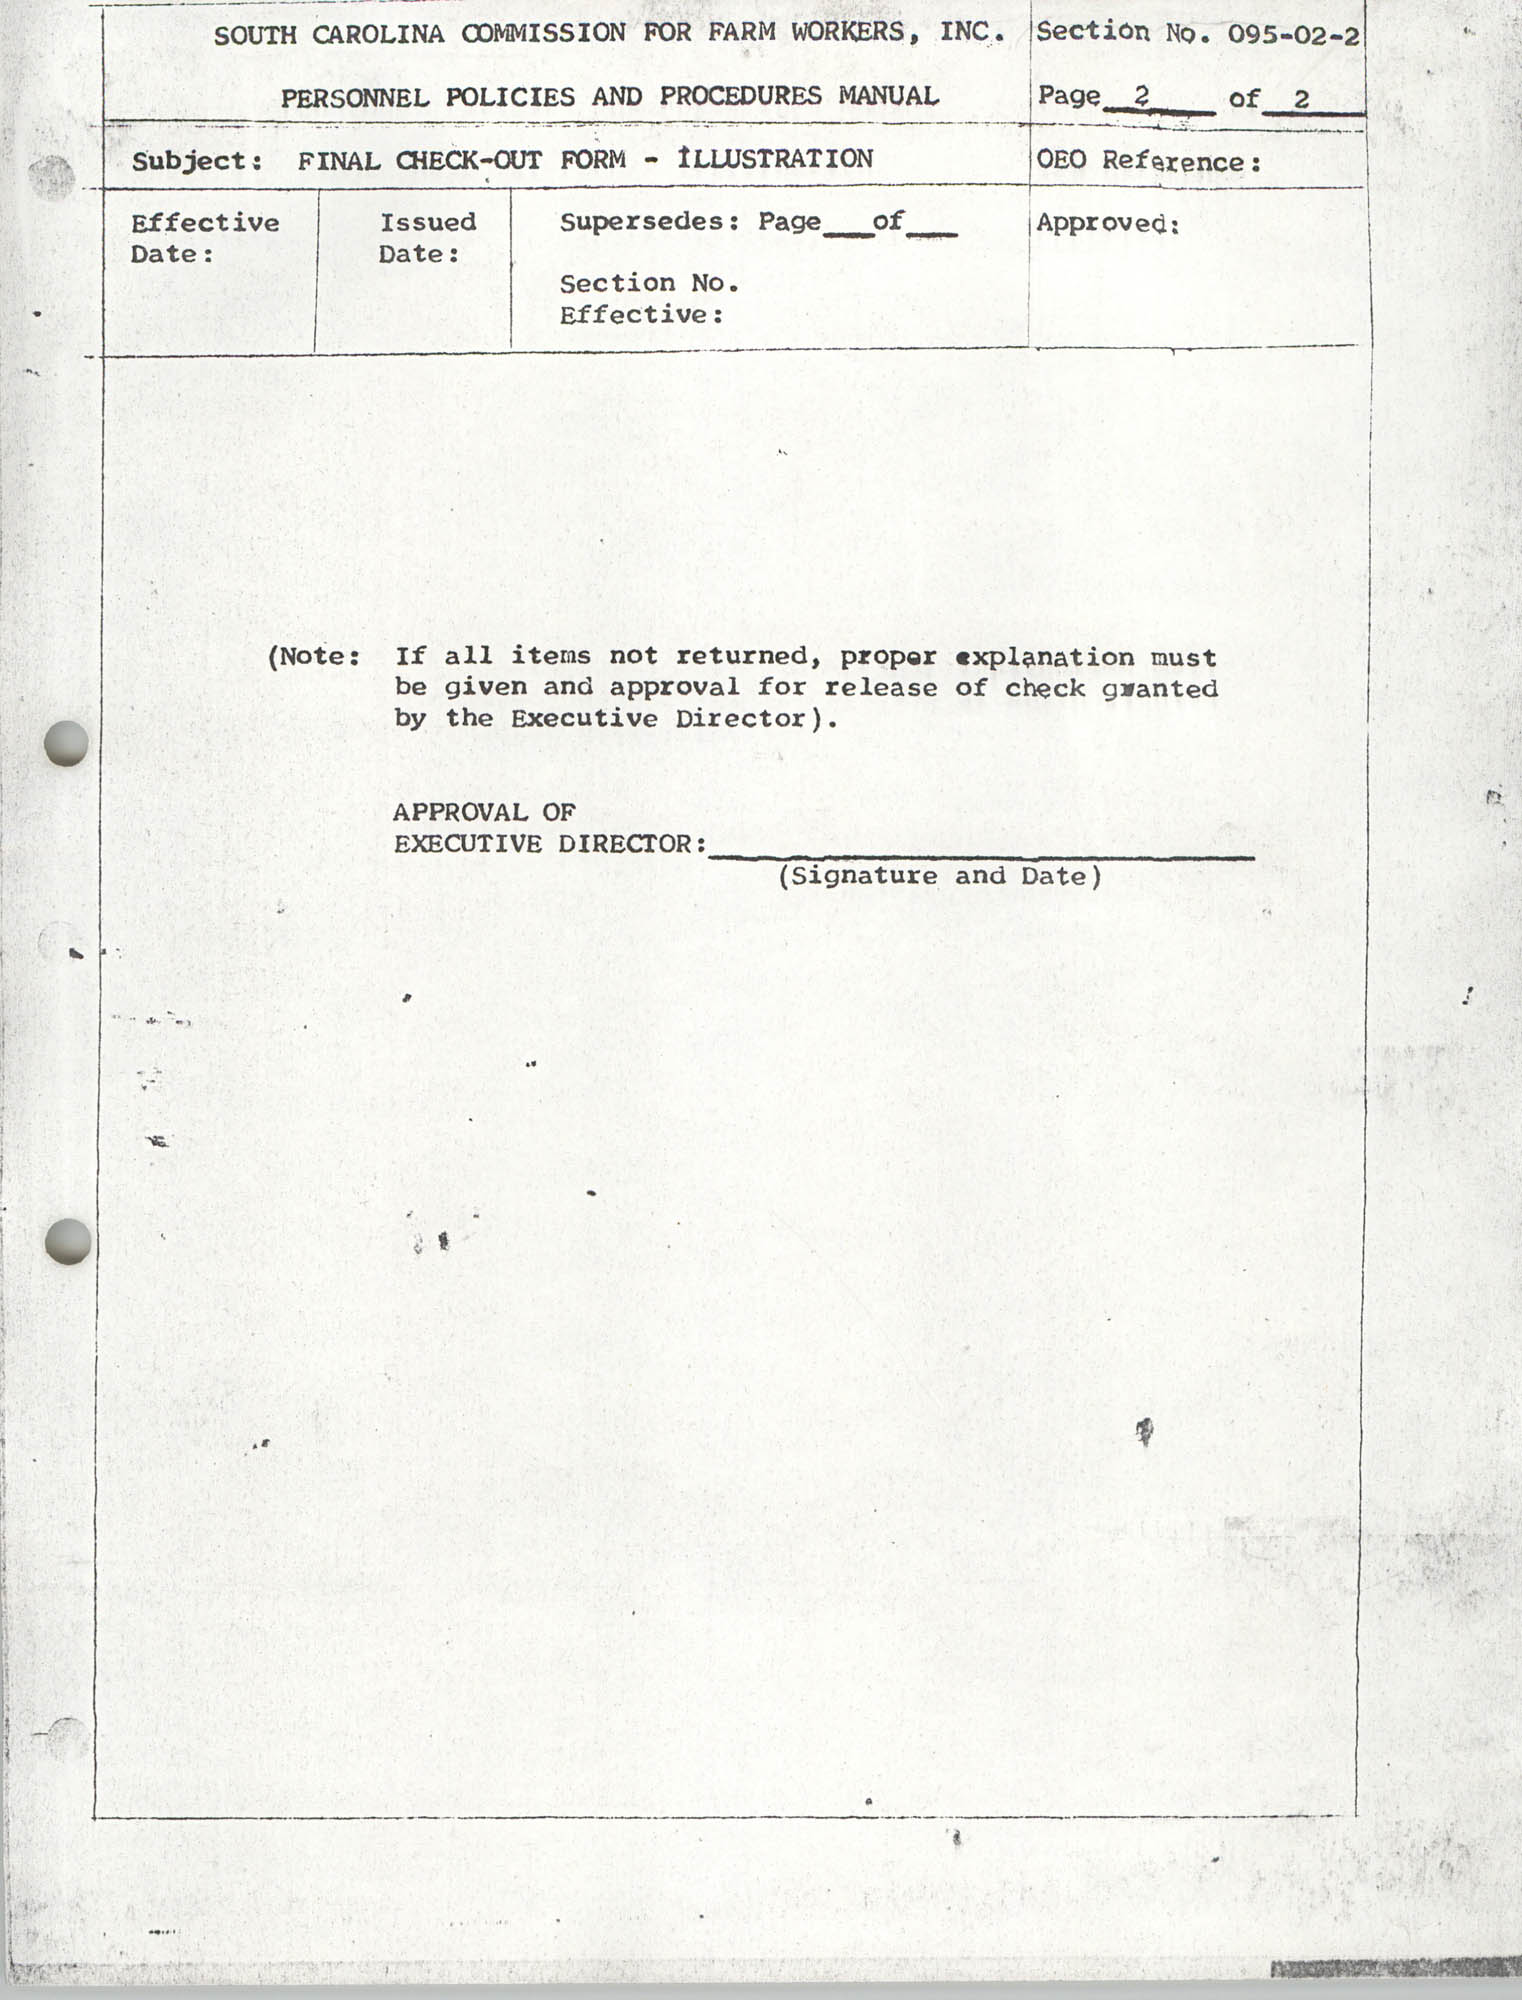 Personnel Policies and Procedures Manual, Section No. 095-02-2, Page 2